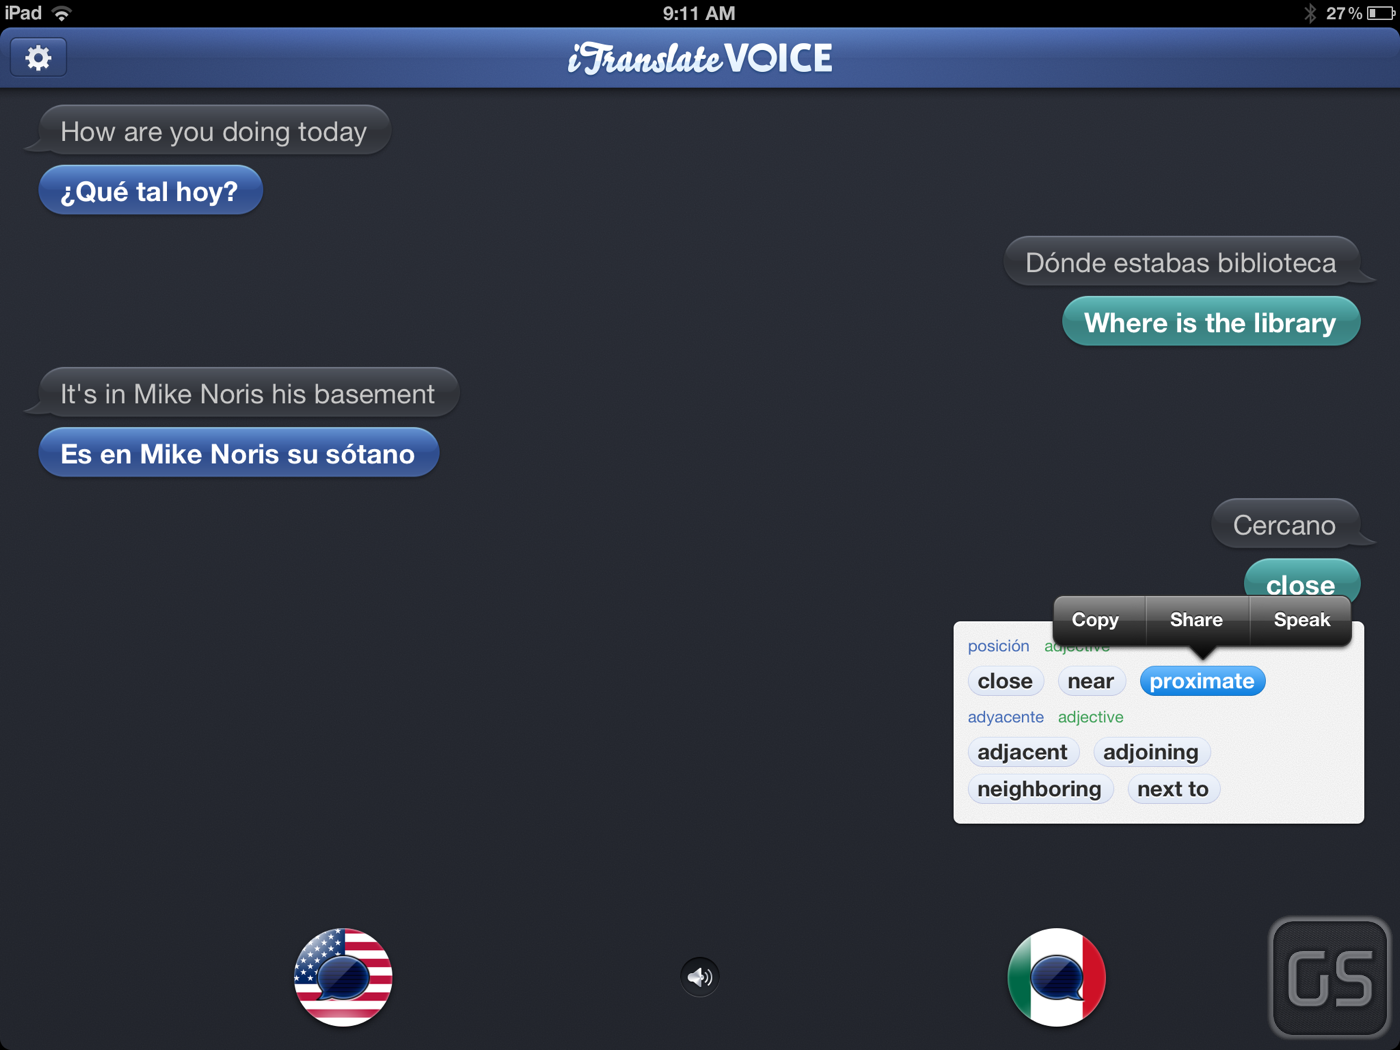 The popular itranslate Voice goes 2 0 in a brand new universal app